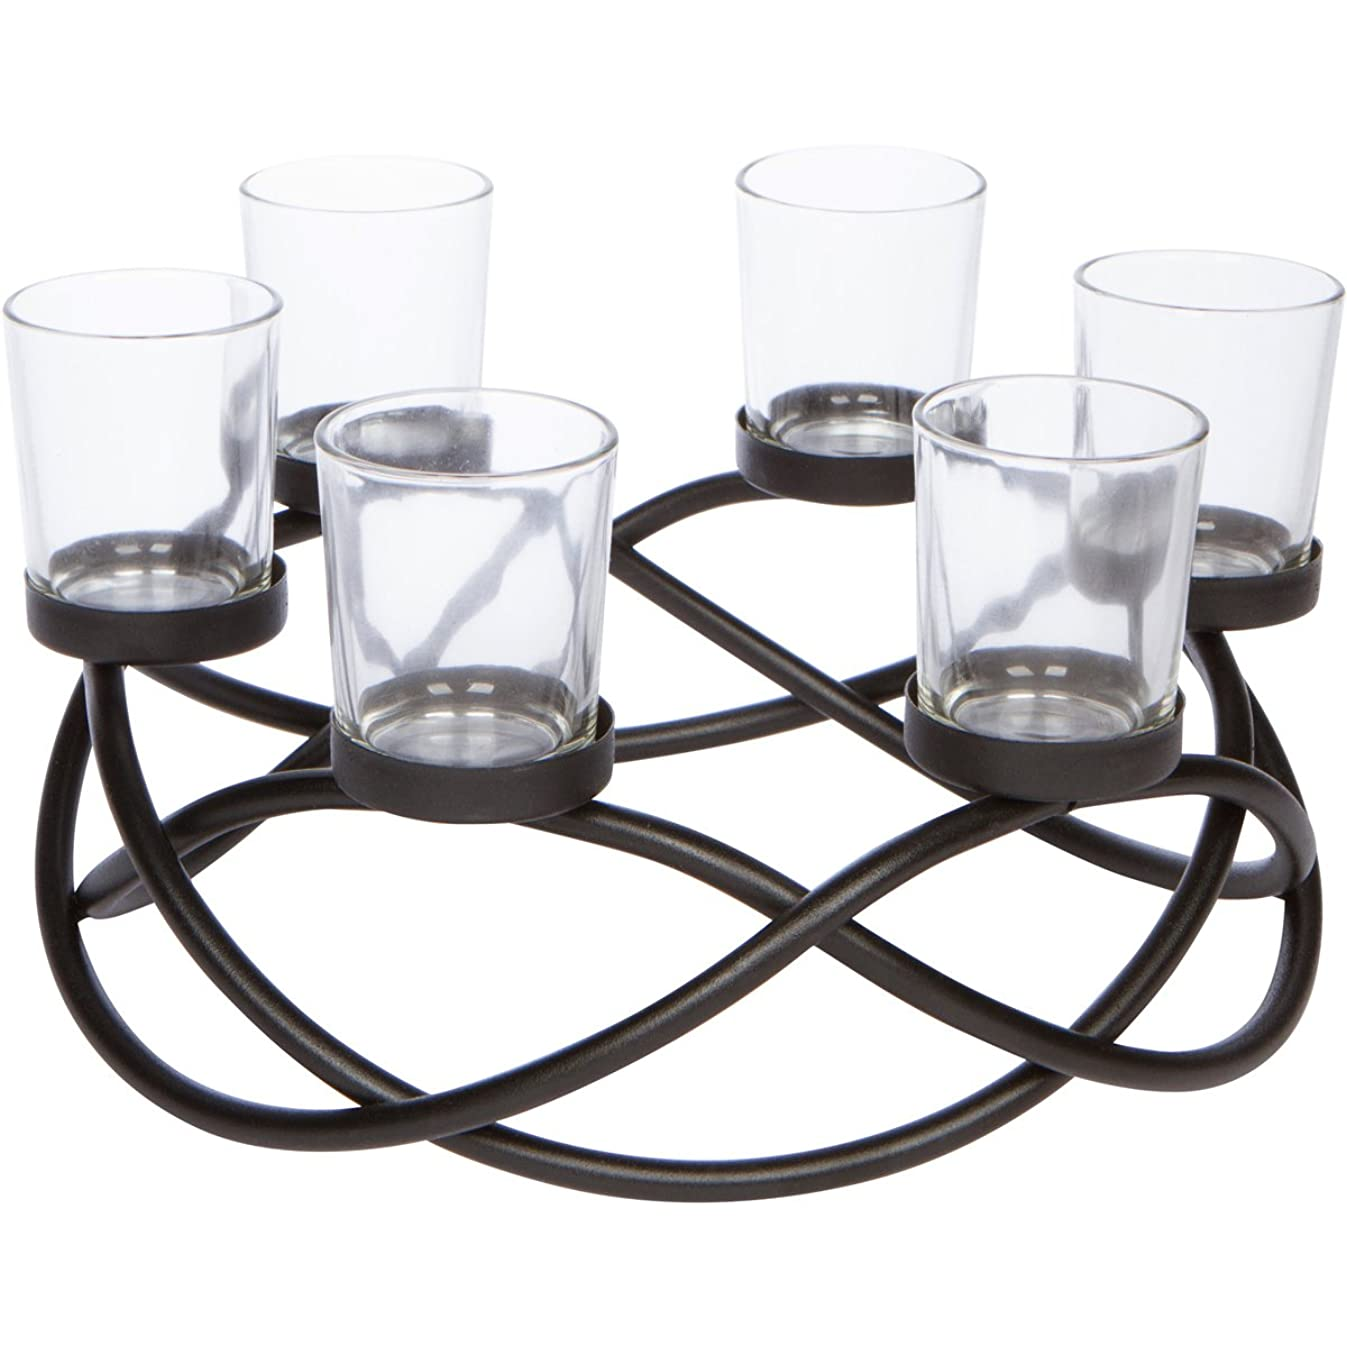 Seraphic Table Centerpiece Candle Holder, Decorative 6-Cup Circular, Iron